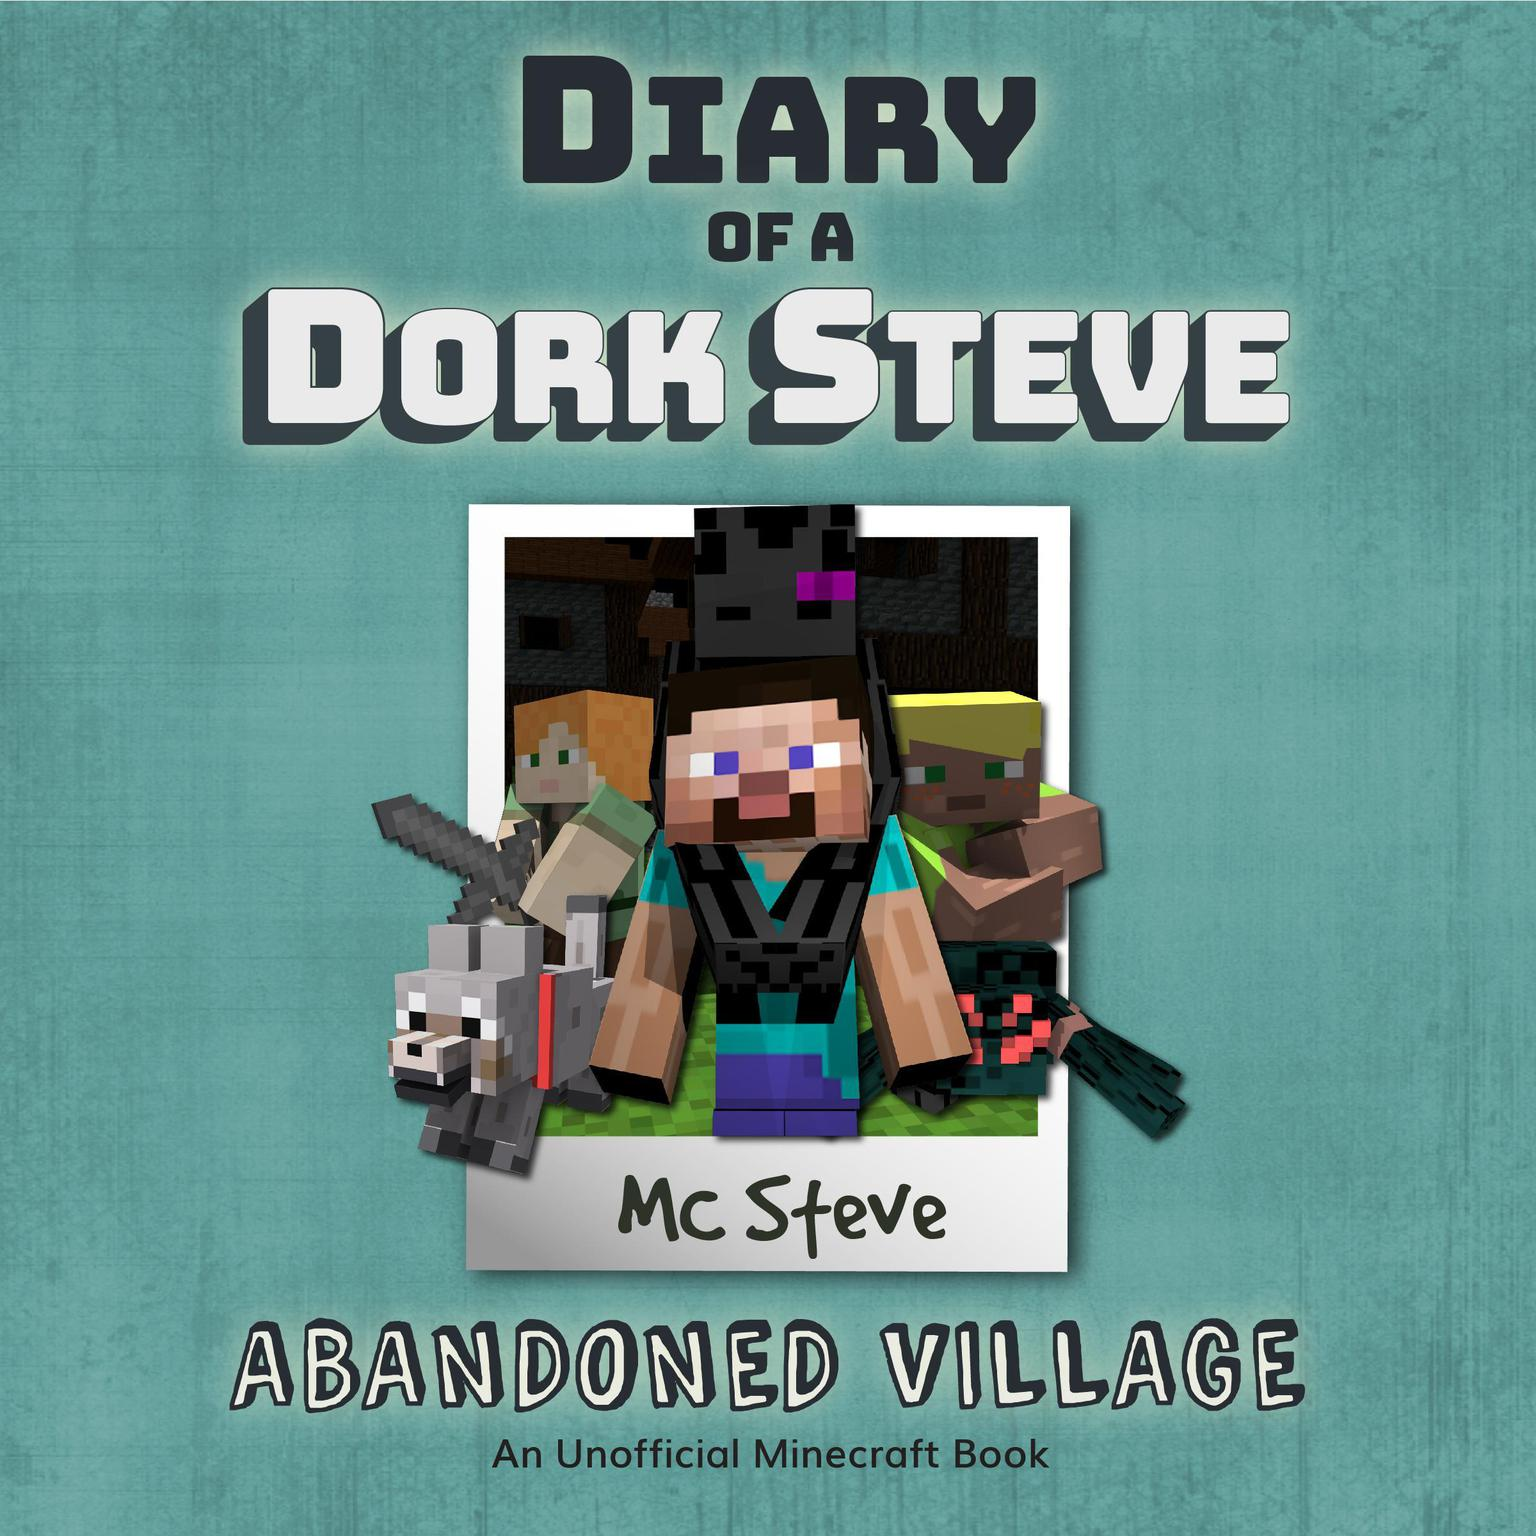 Printable Minecraft: Diary of a Minecraft Dork Steve Book 3: Abandoned Village: (An Unofficial Minecraft Diary Book) Audiobook Cover Art